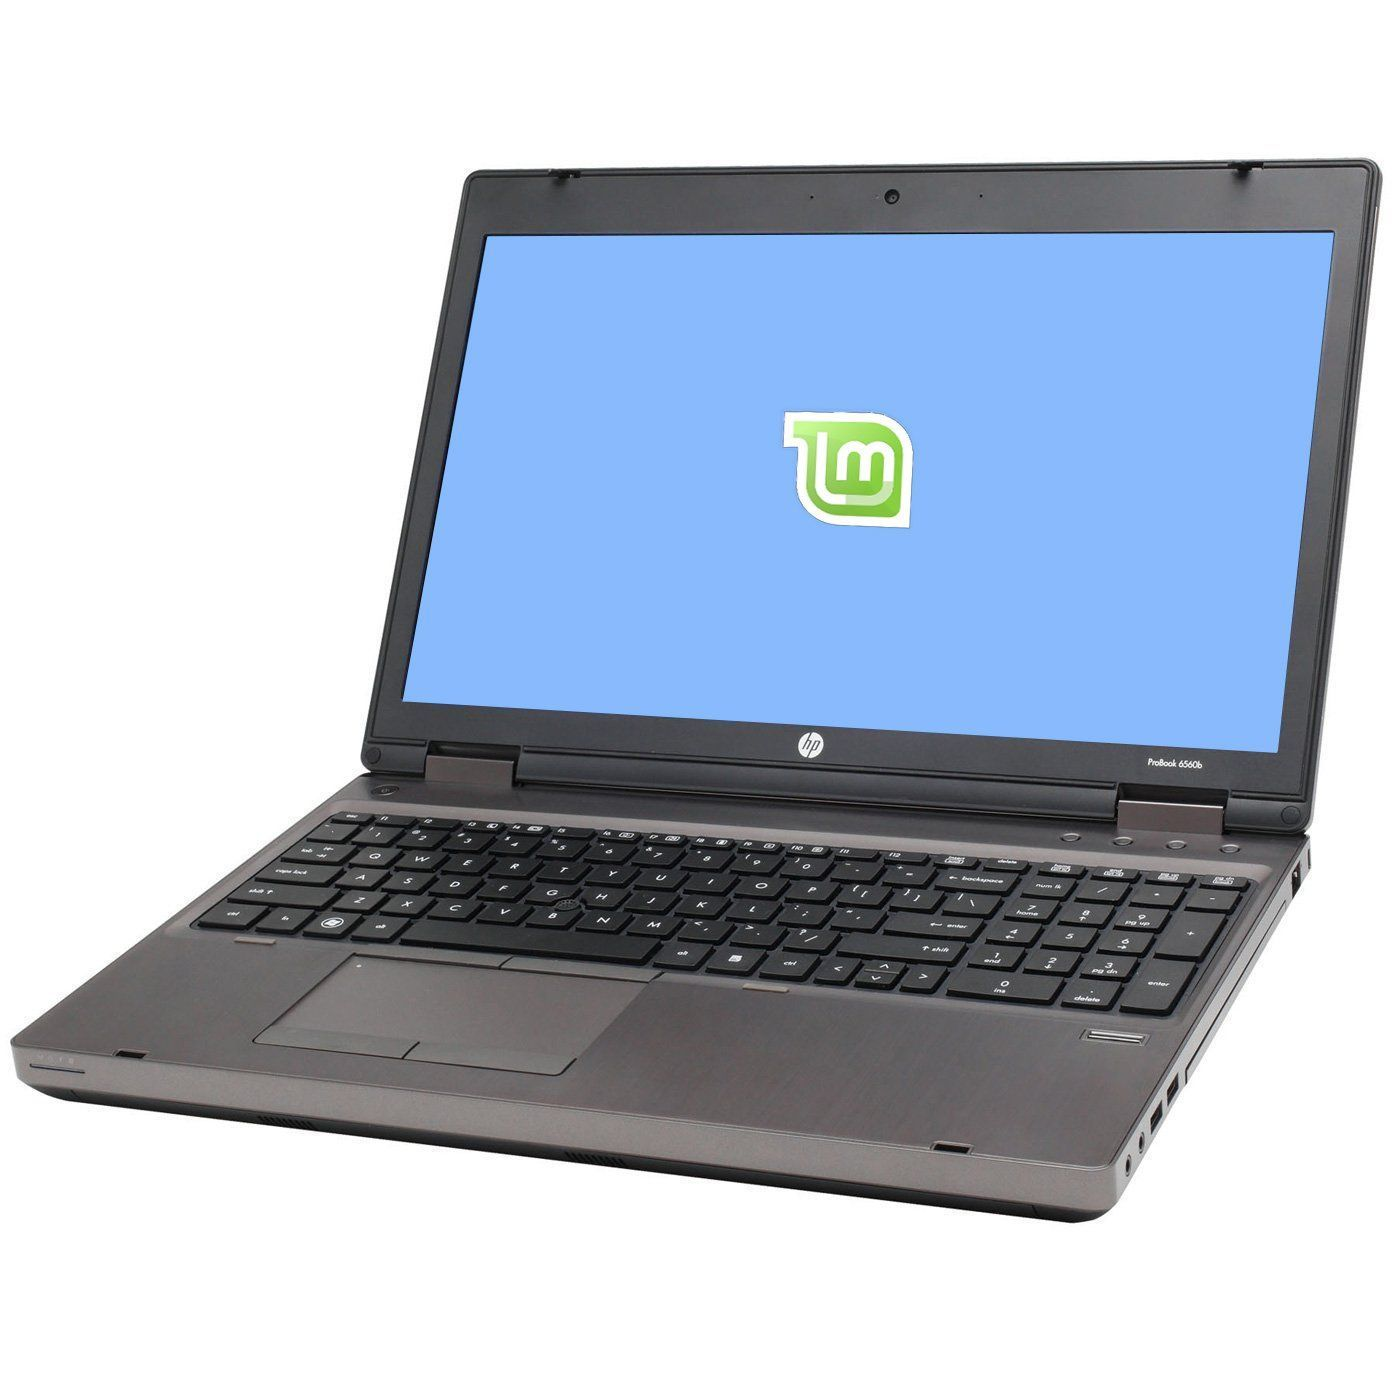 Linux Mint Intel Cherry Trail